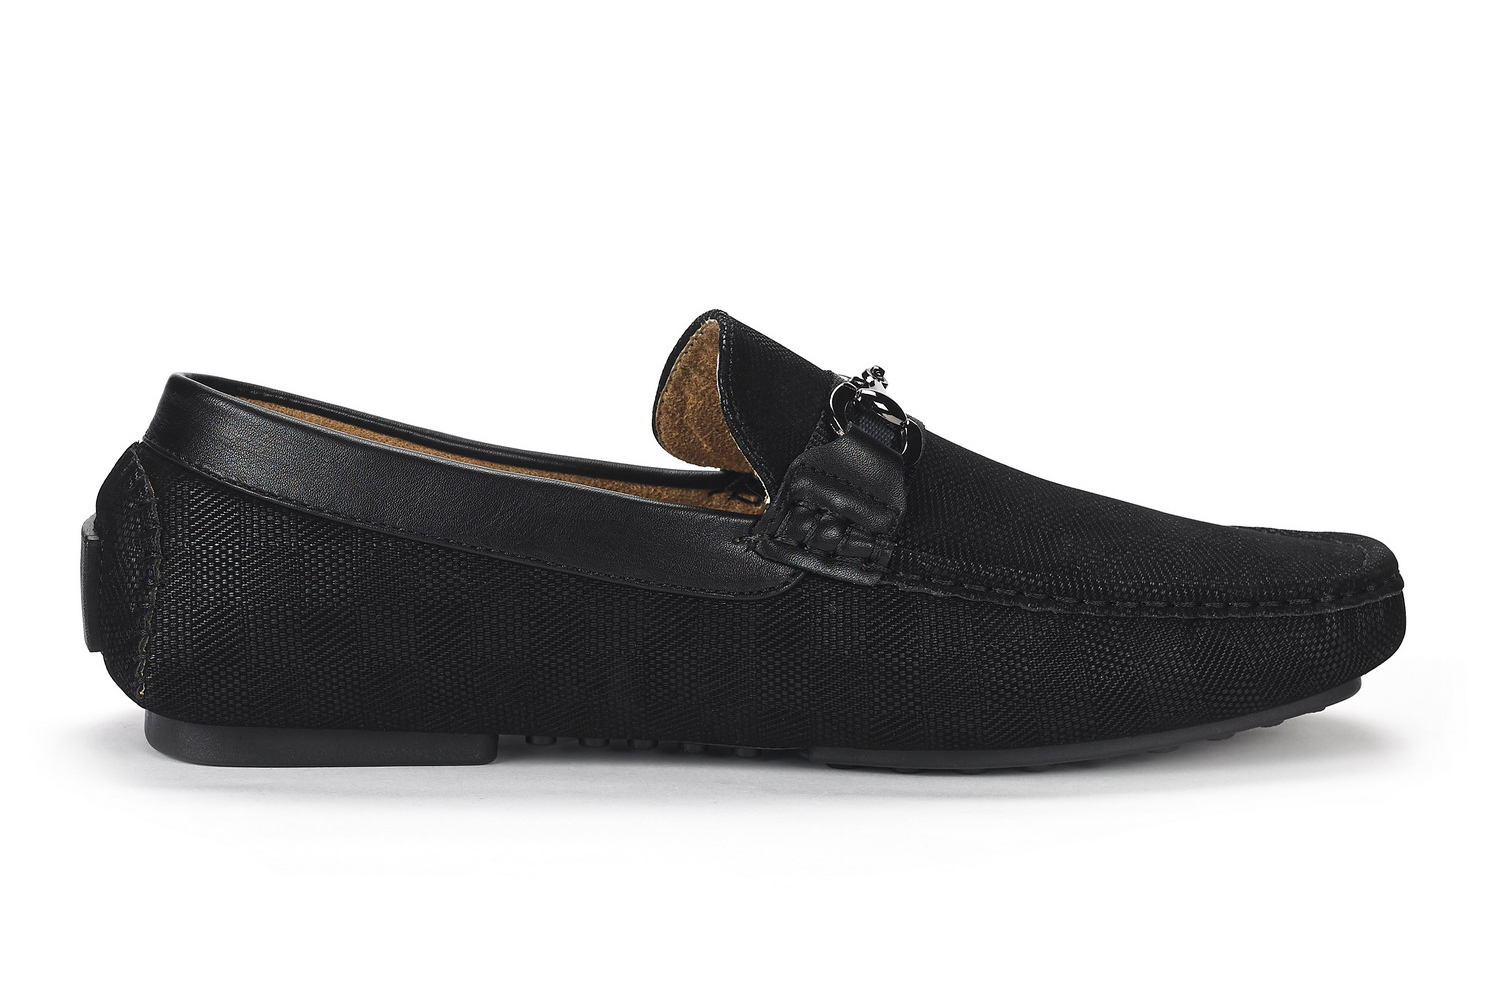 Bruno-Marc-Mens-Casual-Driving-Antiskid-Loafers-Leather-Slip-On-Moccasins-Shoes thumbnail 10